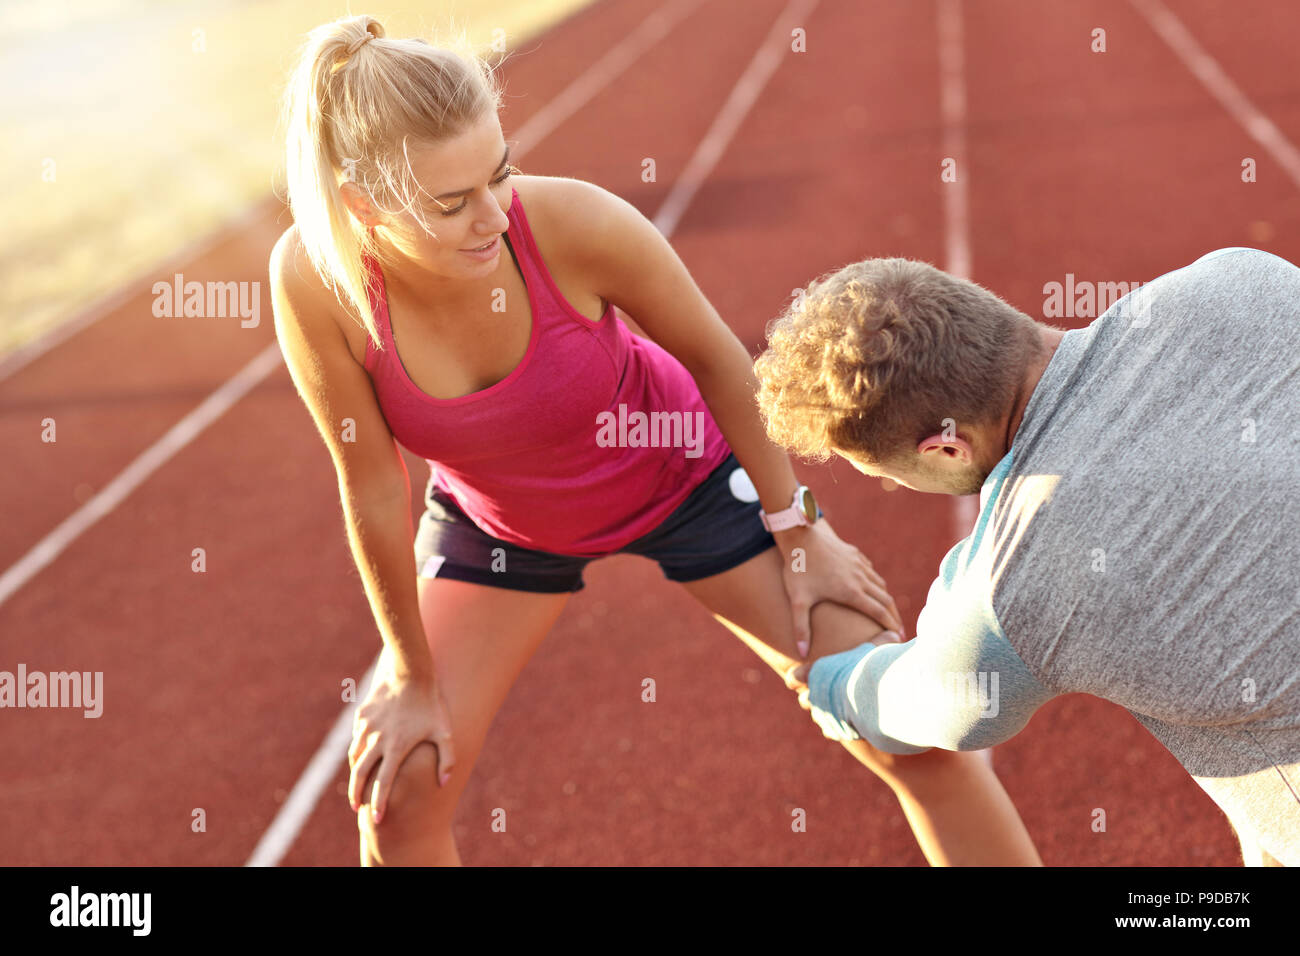 Man and woman racing on outdoor track - Stock Image